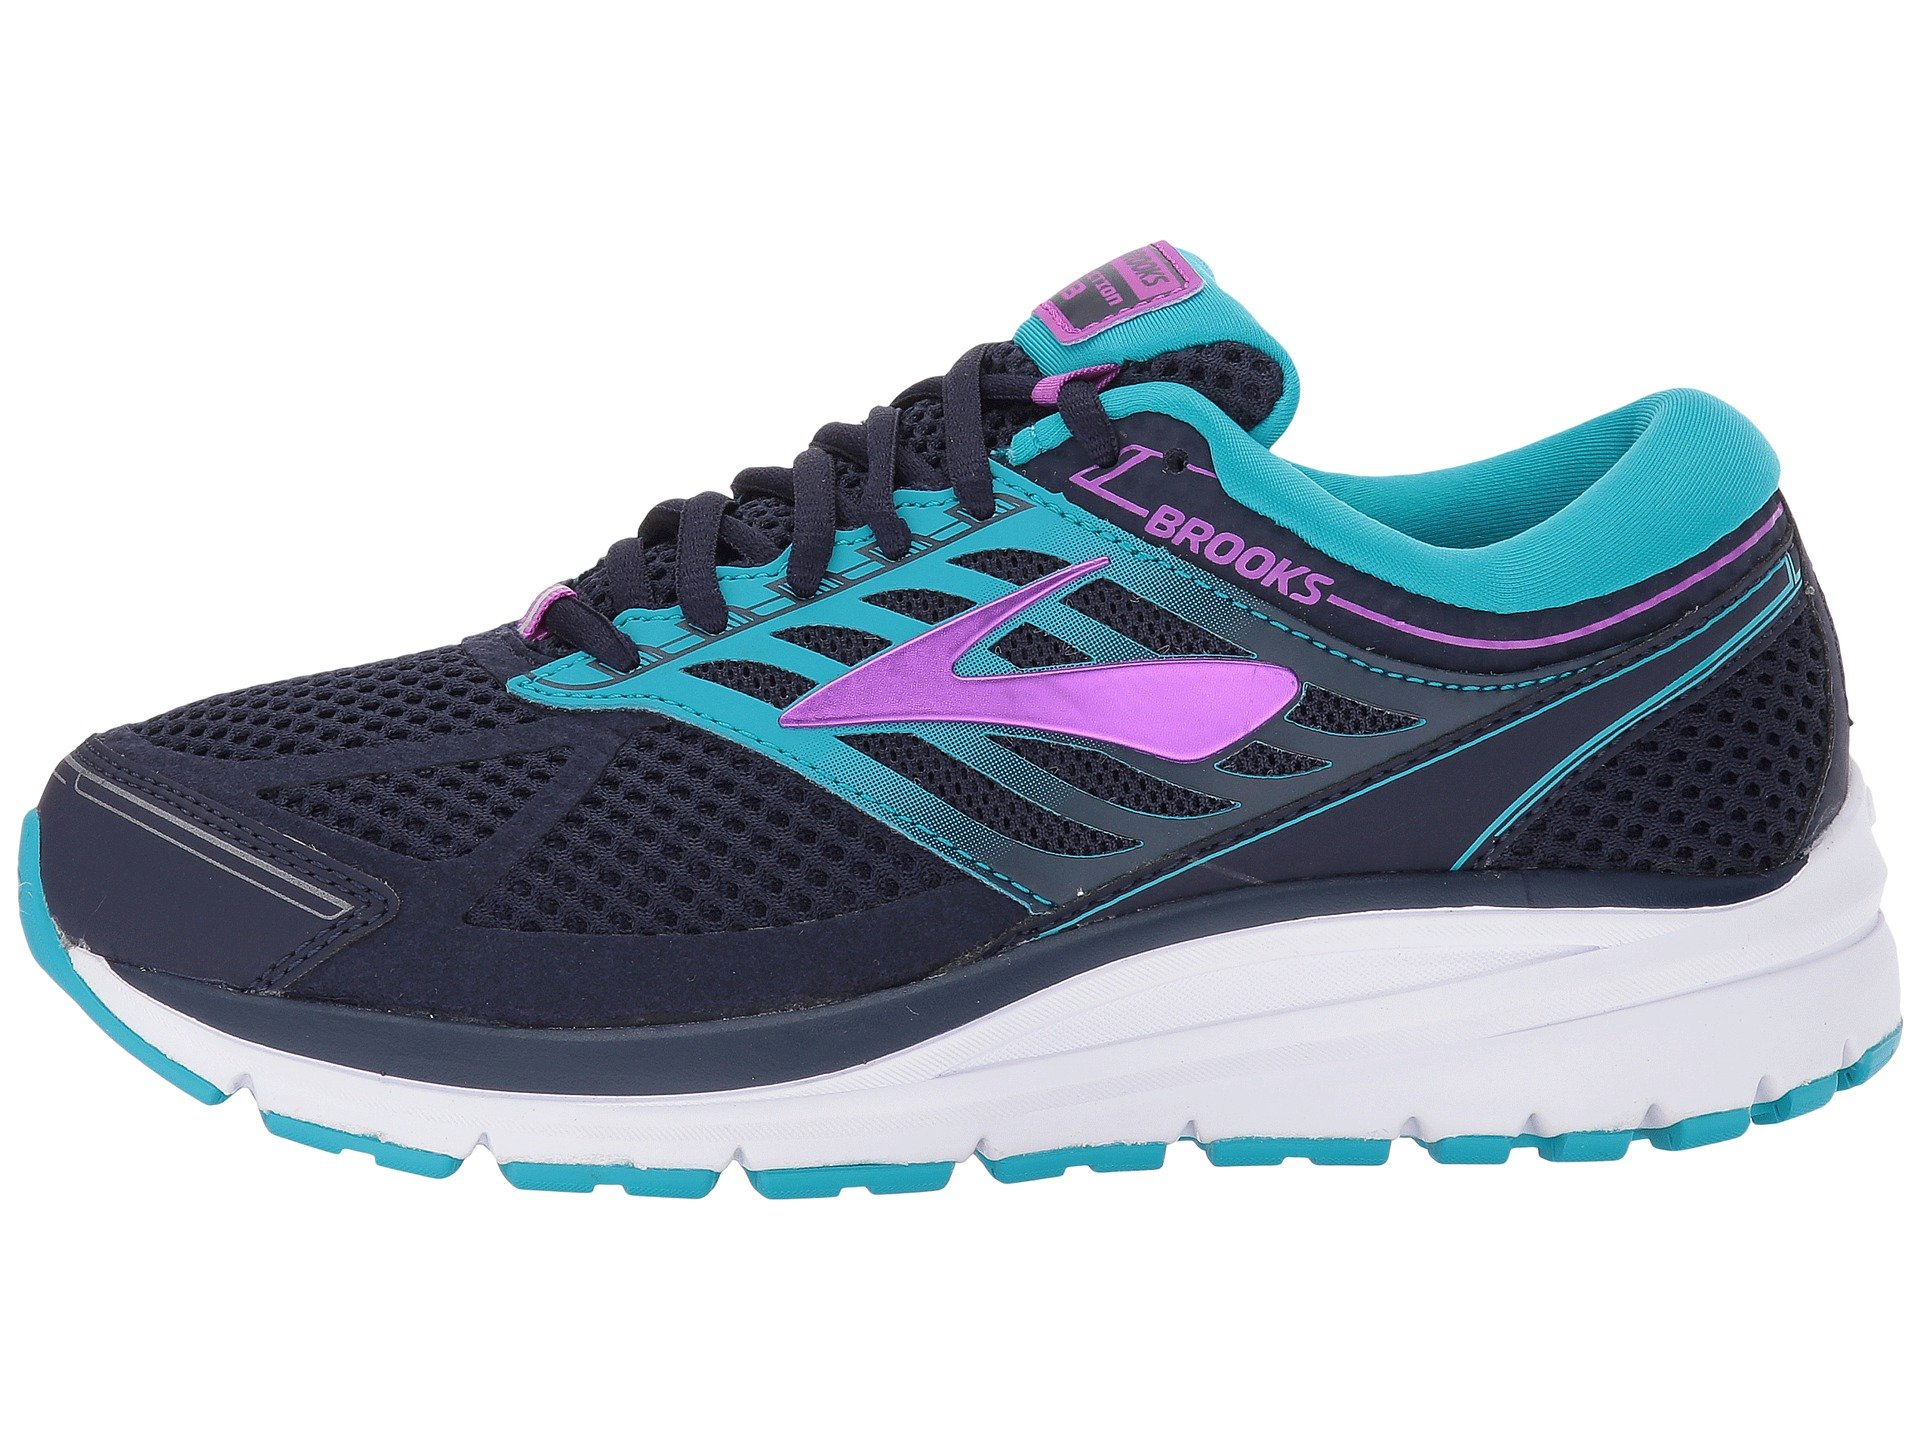 12 Most Comfortable Brooks Running Shoes